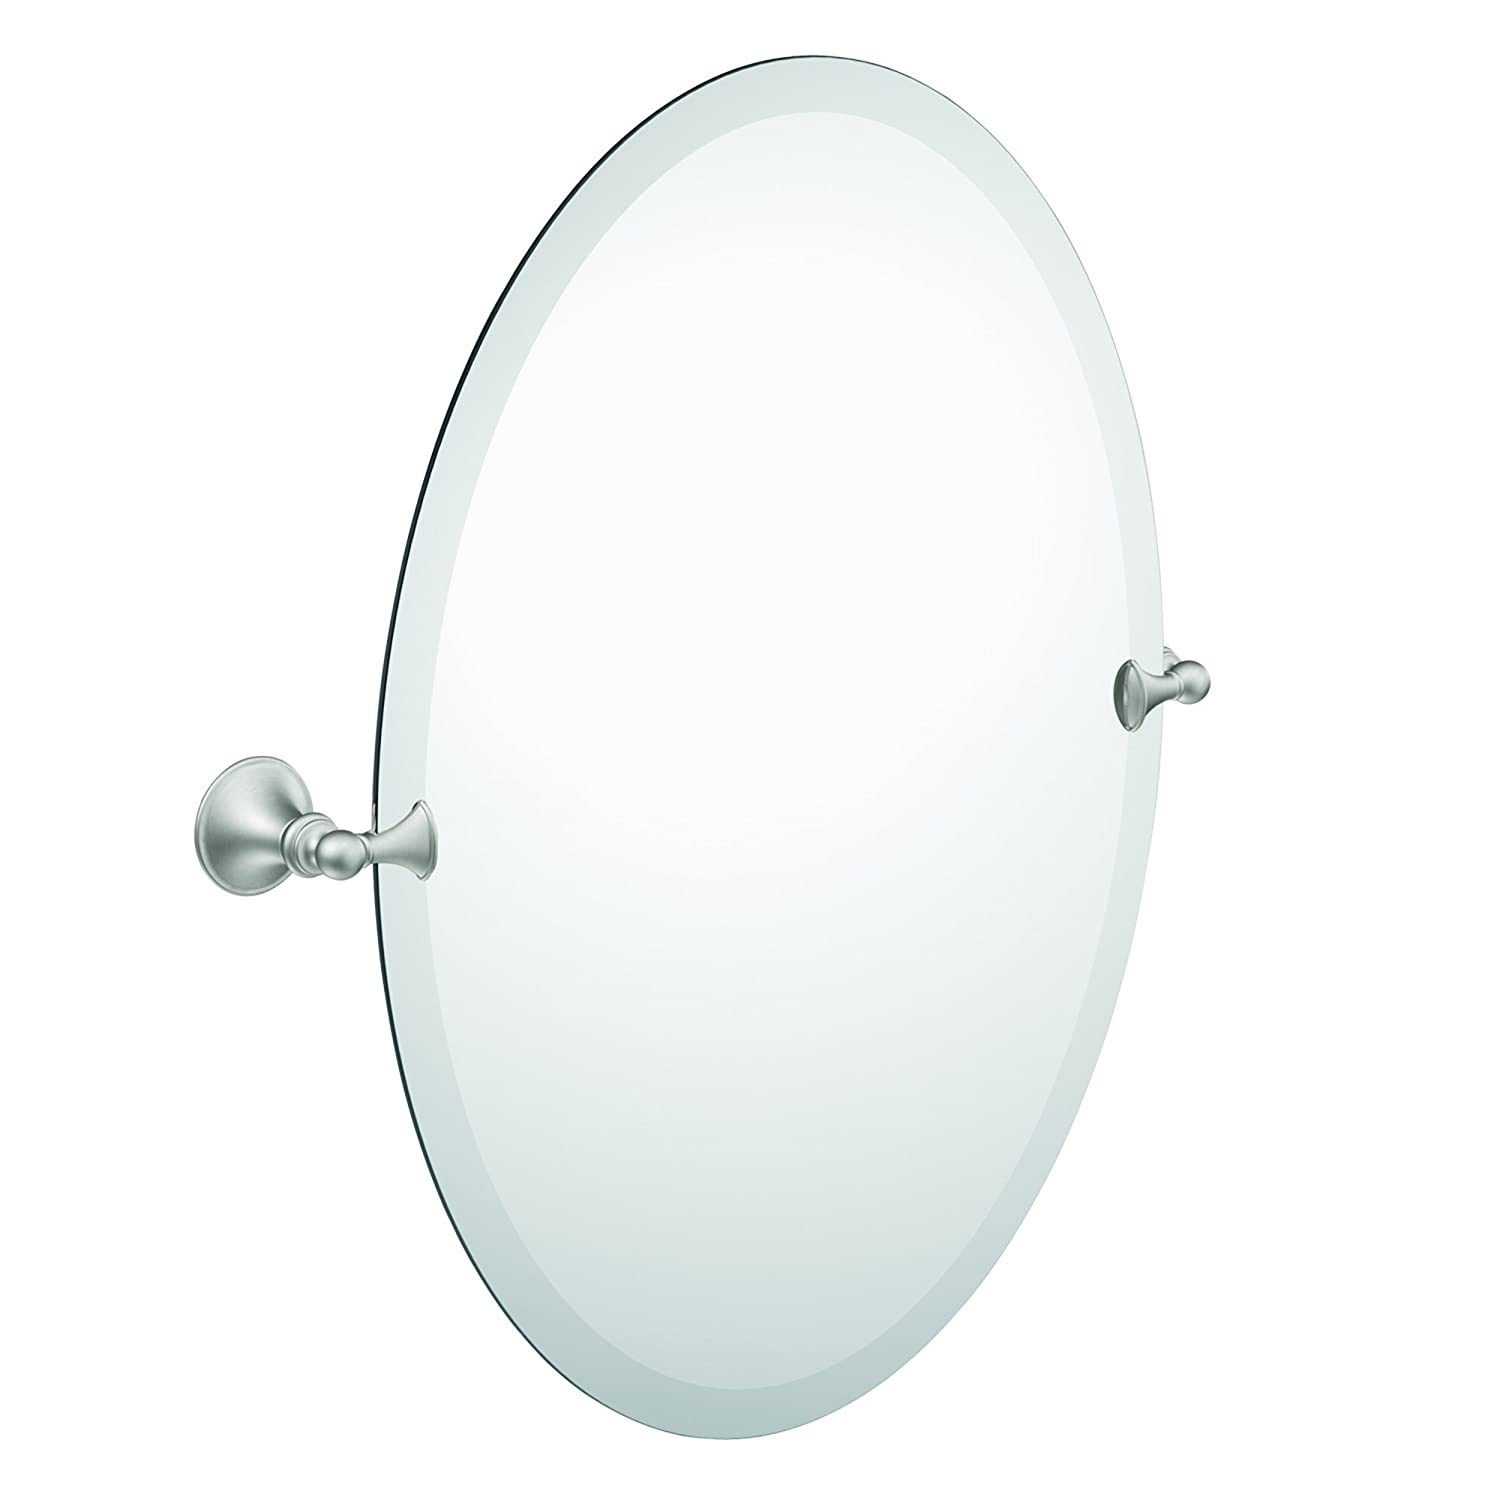 bathroom mirror beveled edge oval tilting brushed nickel